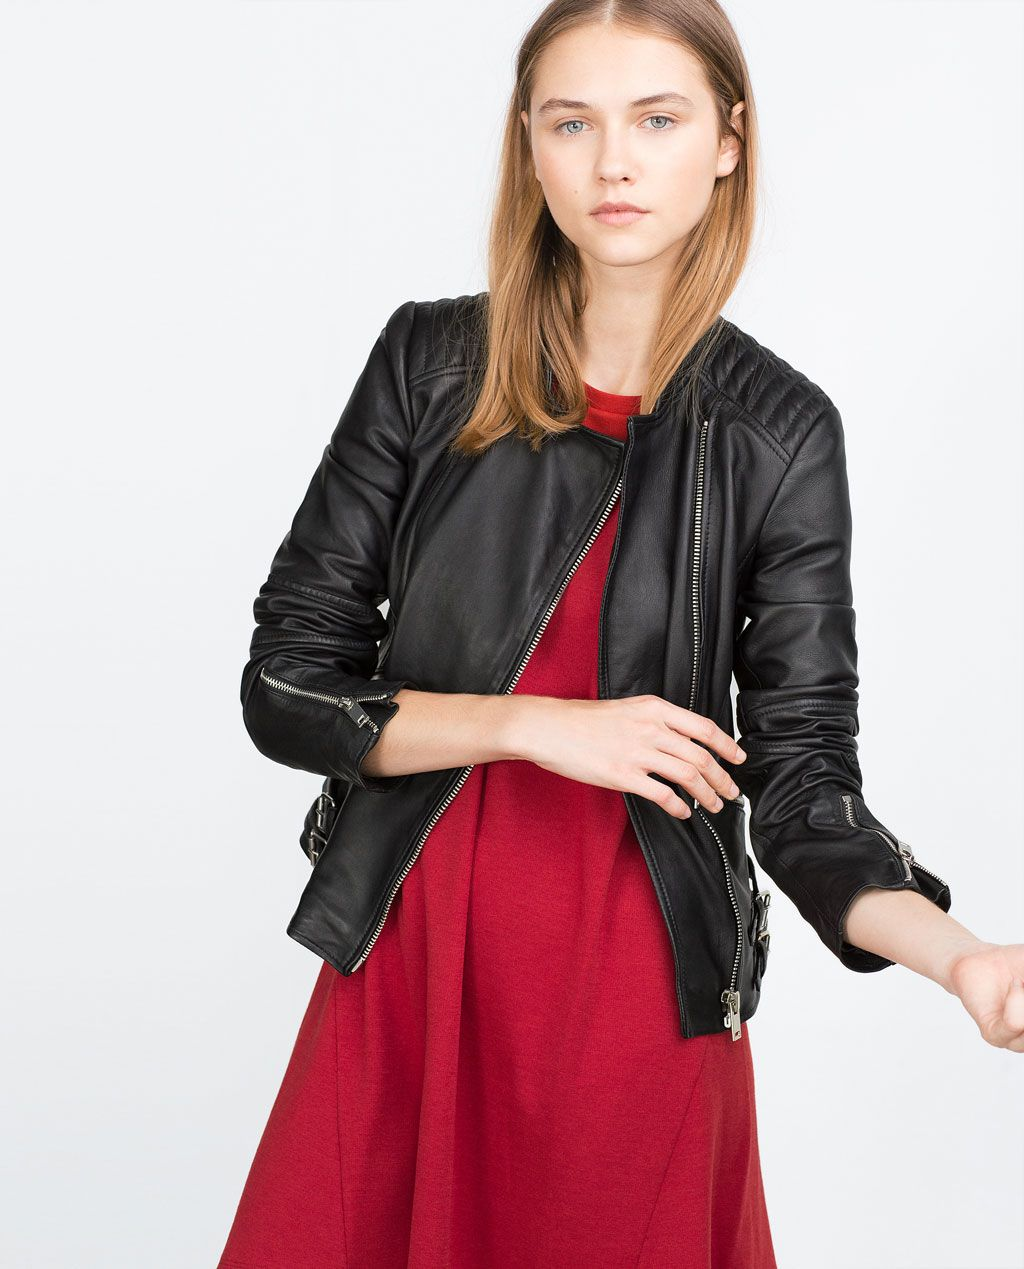 095375d8c2f7 $199 Image 4 of LEATHER JACKET from Zara Cheap Online Shopping, Jackets For  Women,